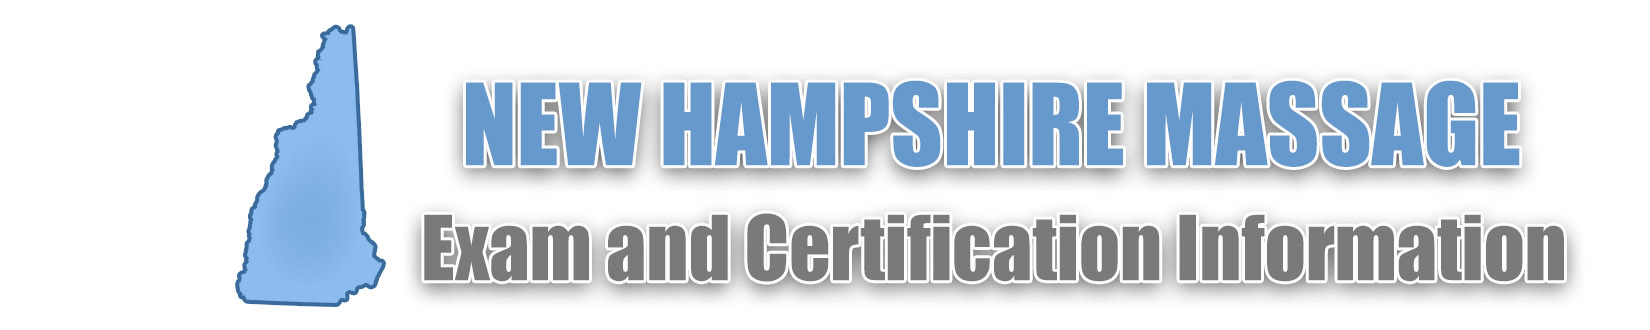 New Hampshire MBLEX Massage Exam and Certification Information